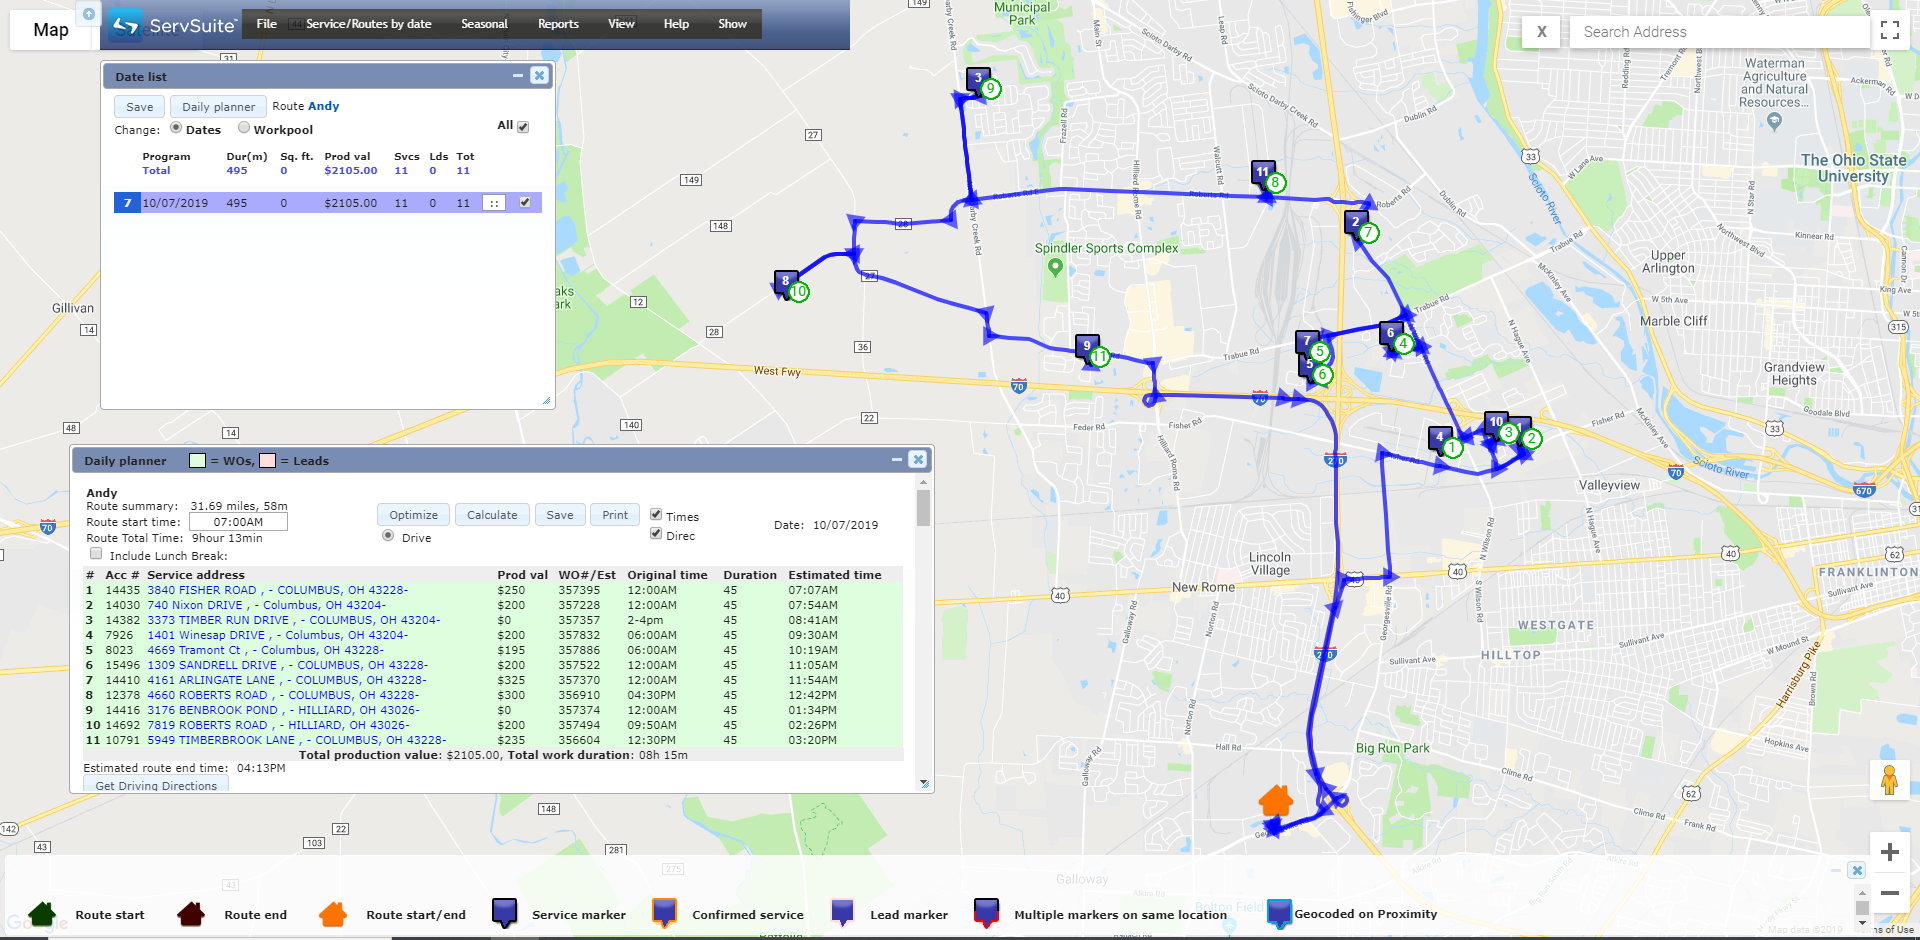 Route Optimization/Intelligent Routing